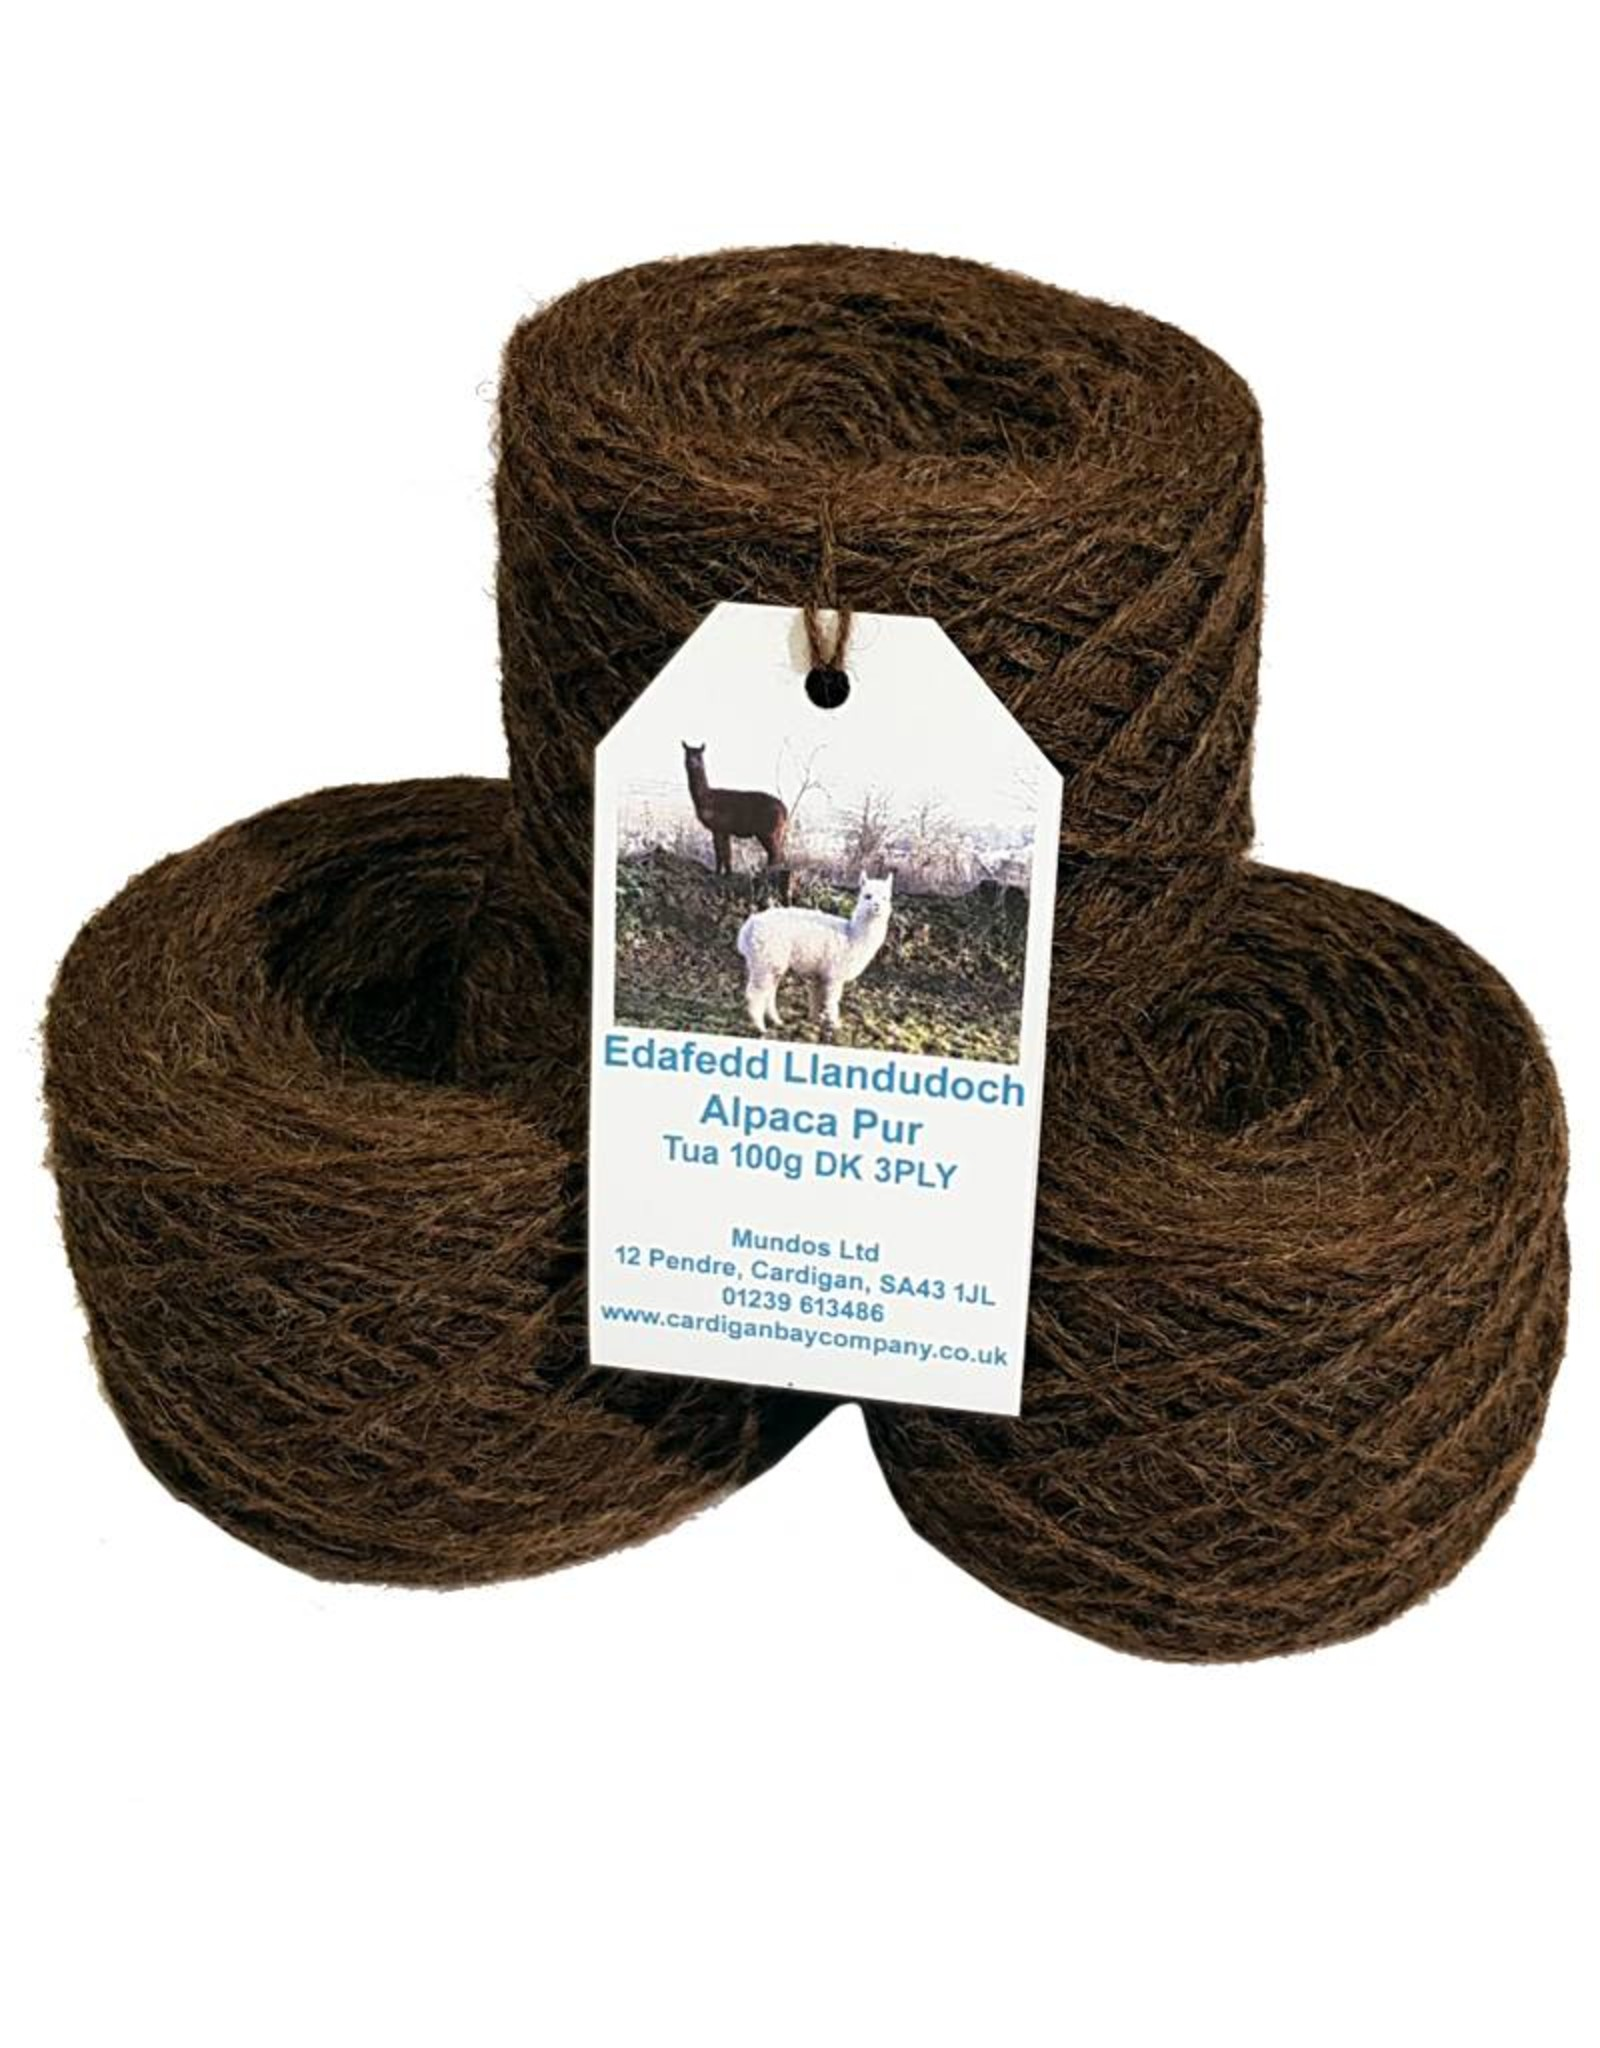 St Dogmaels Yarn - Pure Alpaca